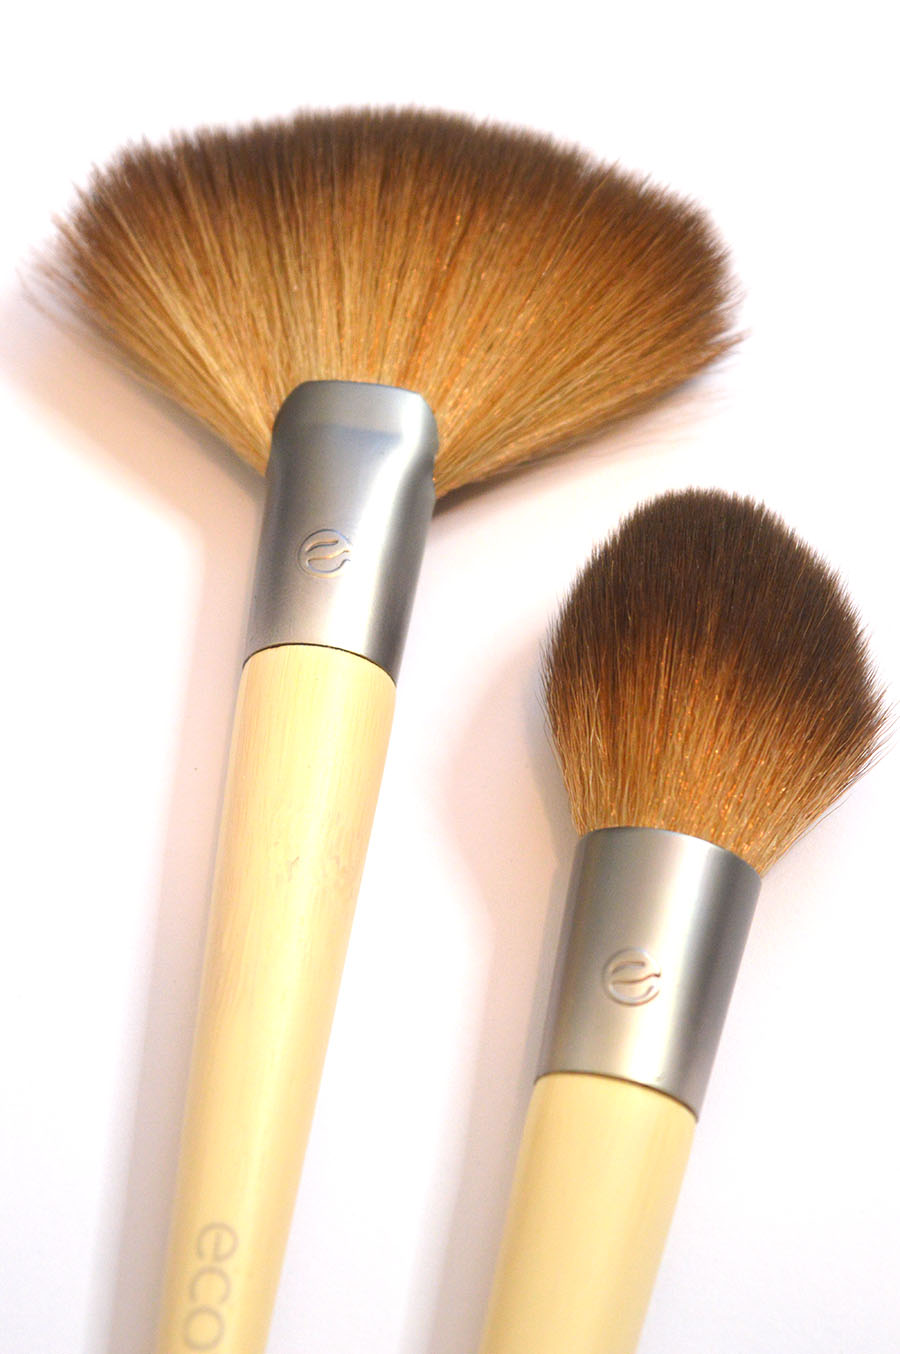 Eco Tools highlight brush review